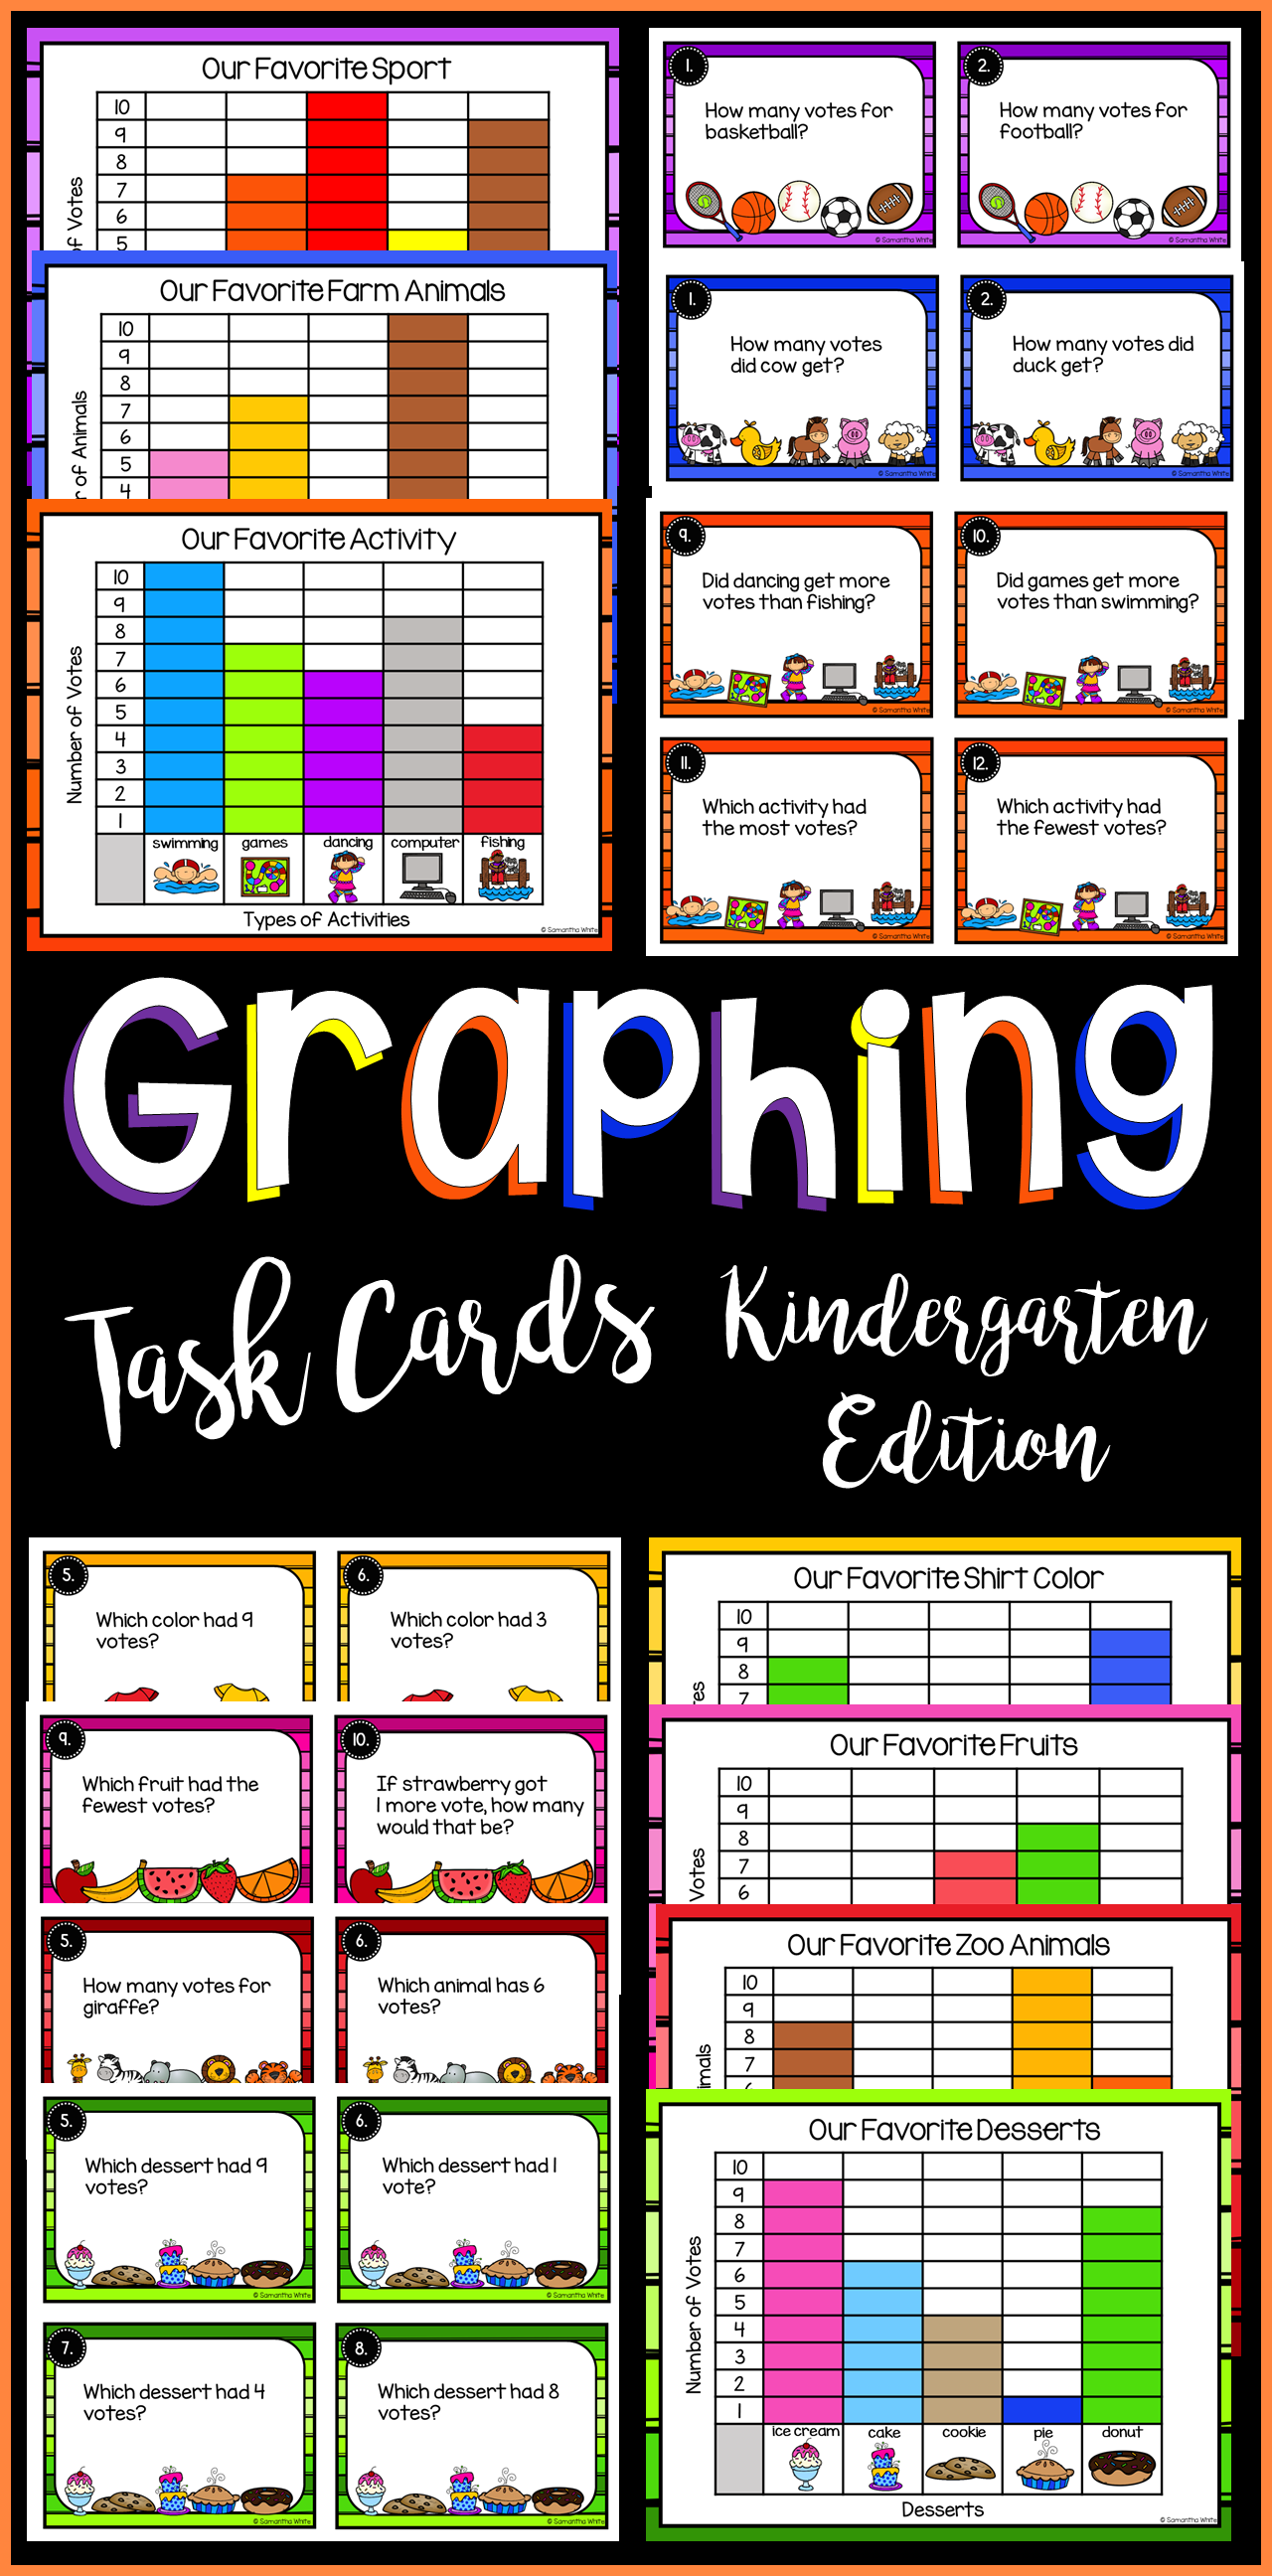 Graphing Task Cards Kindergarten Edition